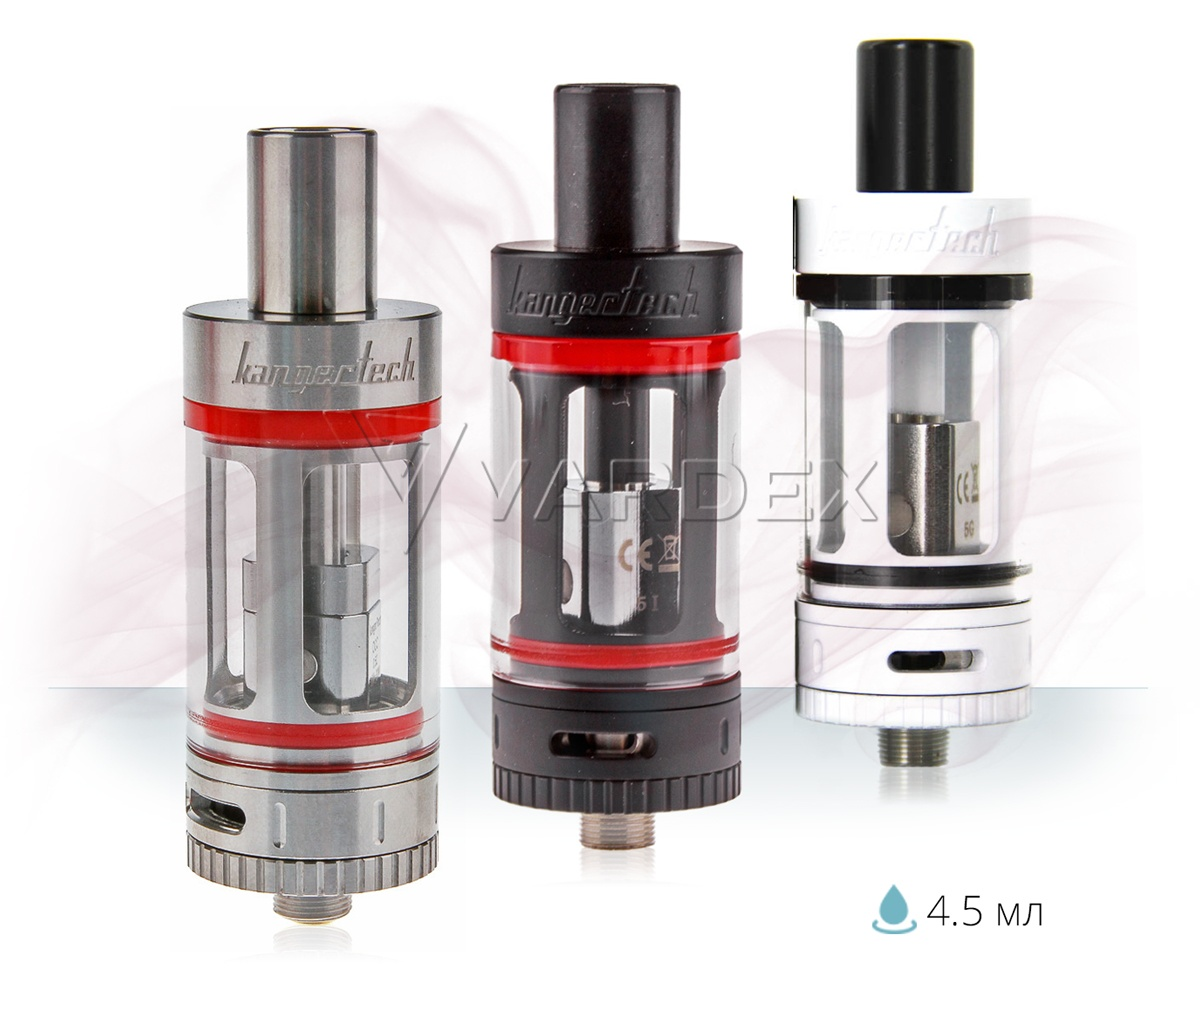 Kanger Subtank Mini Plus